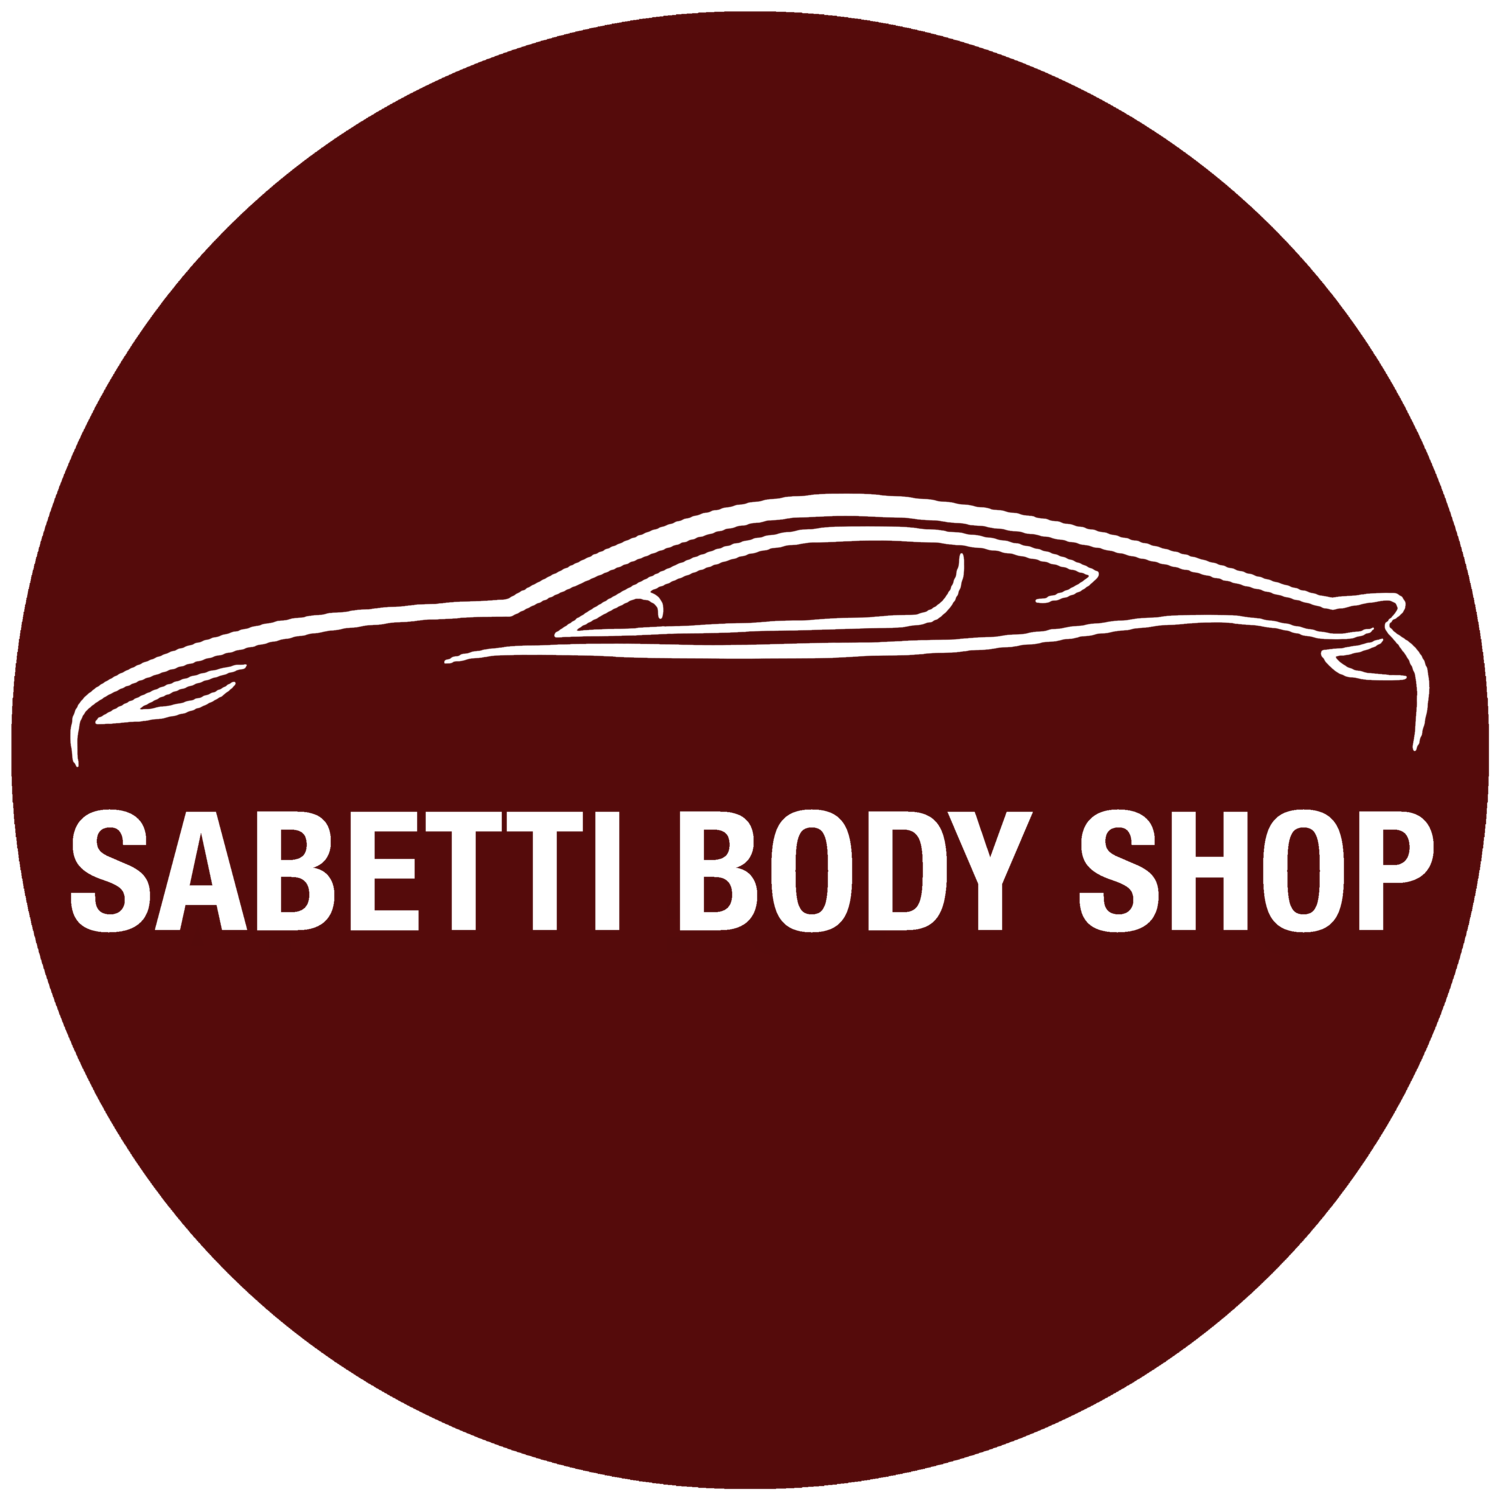 Sabetti Body Shop